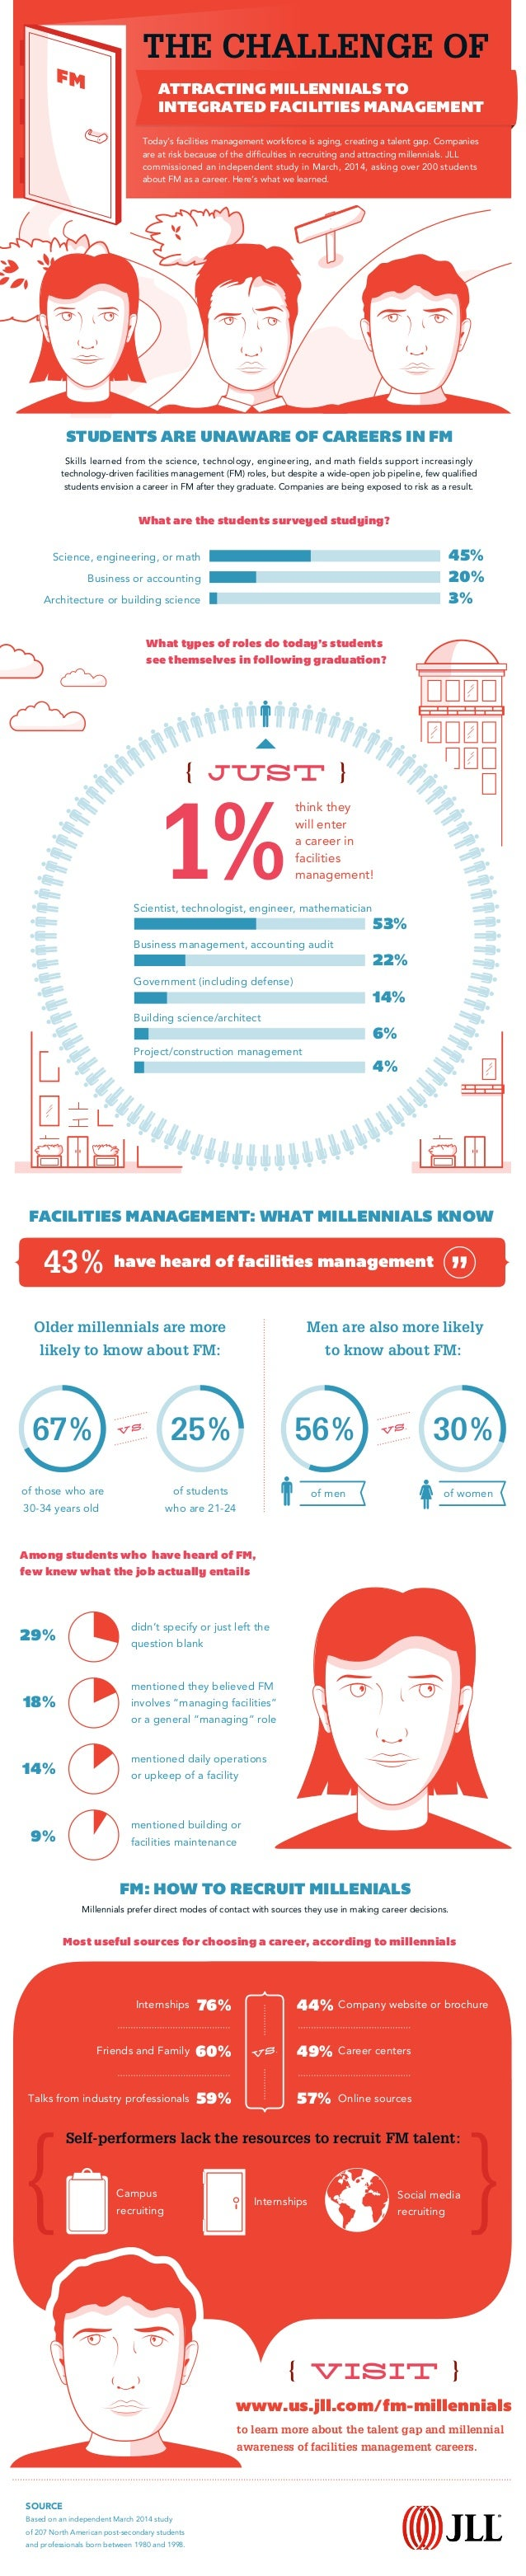 The challenge of attracting millennials to integrated facilities management